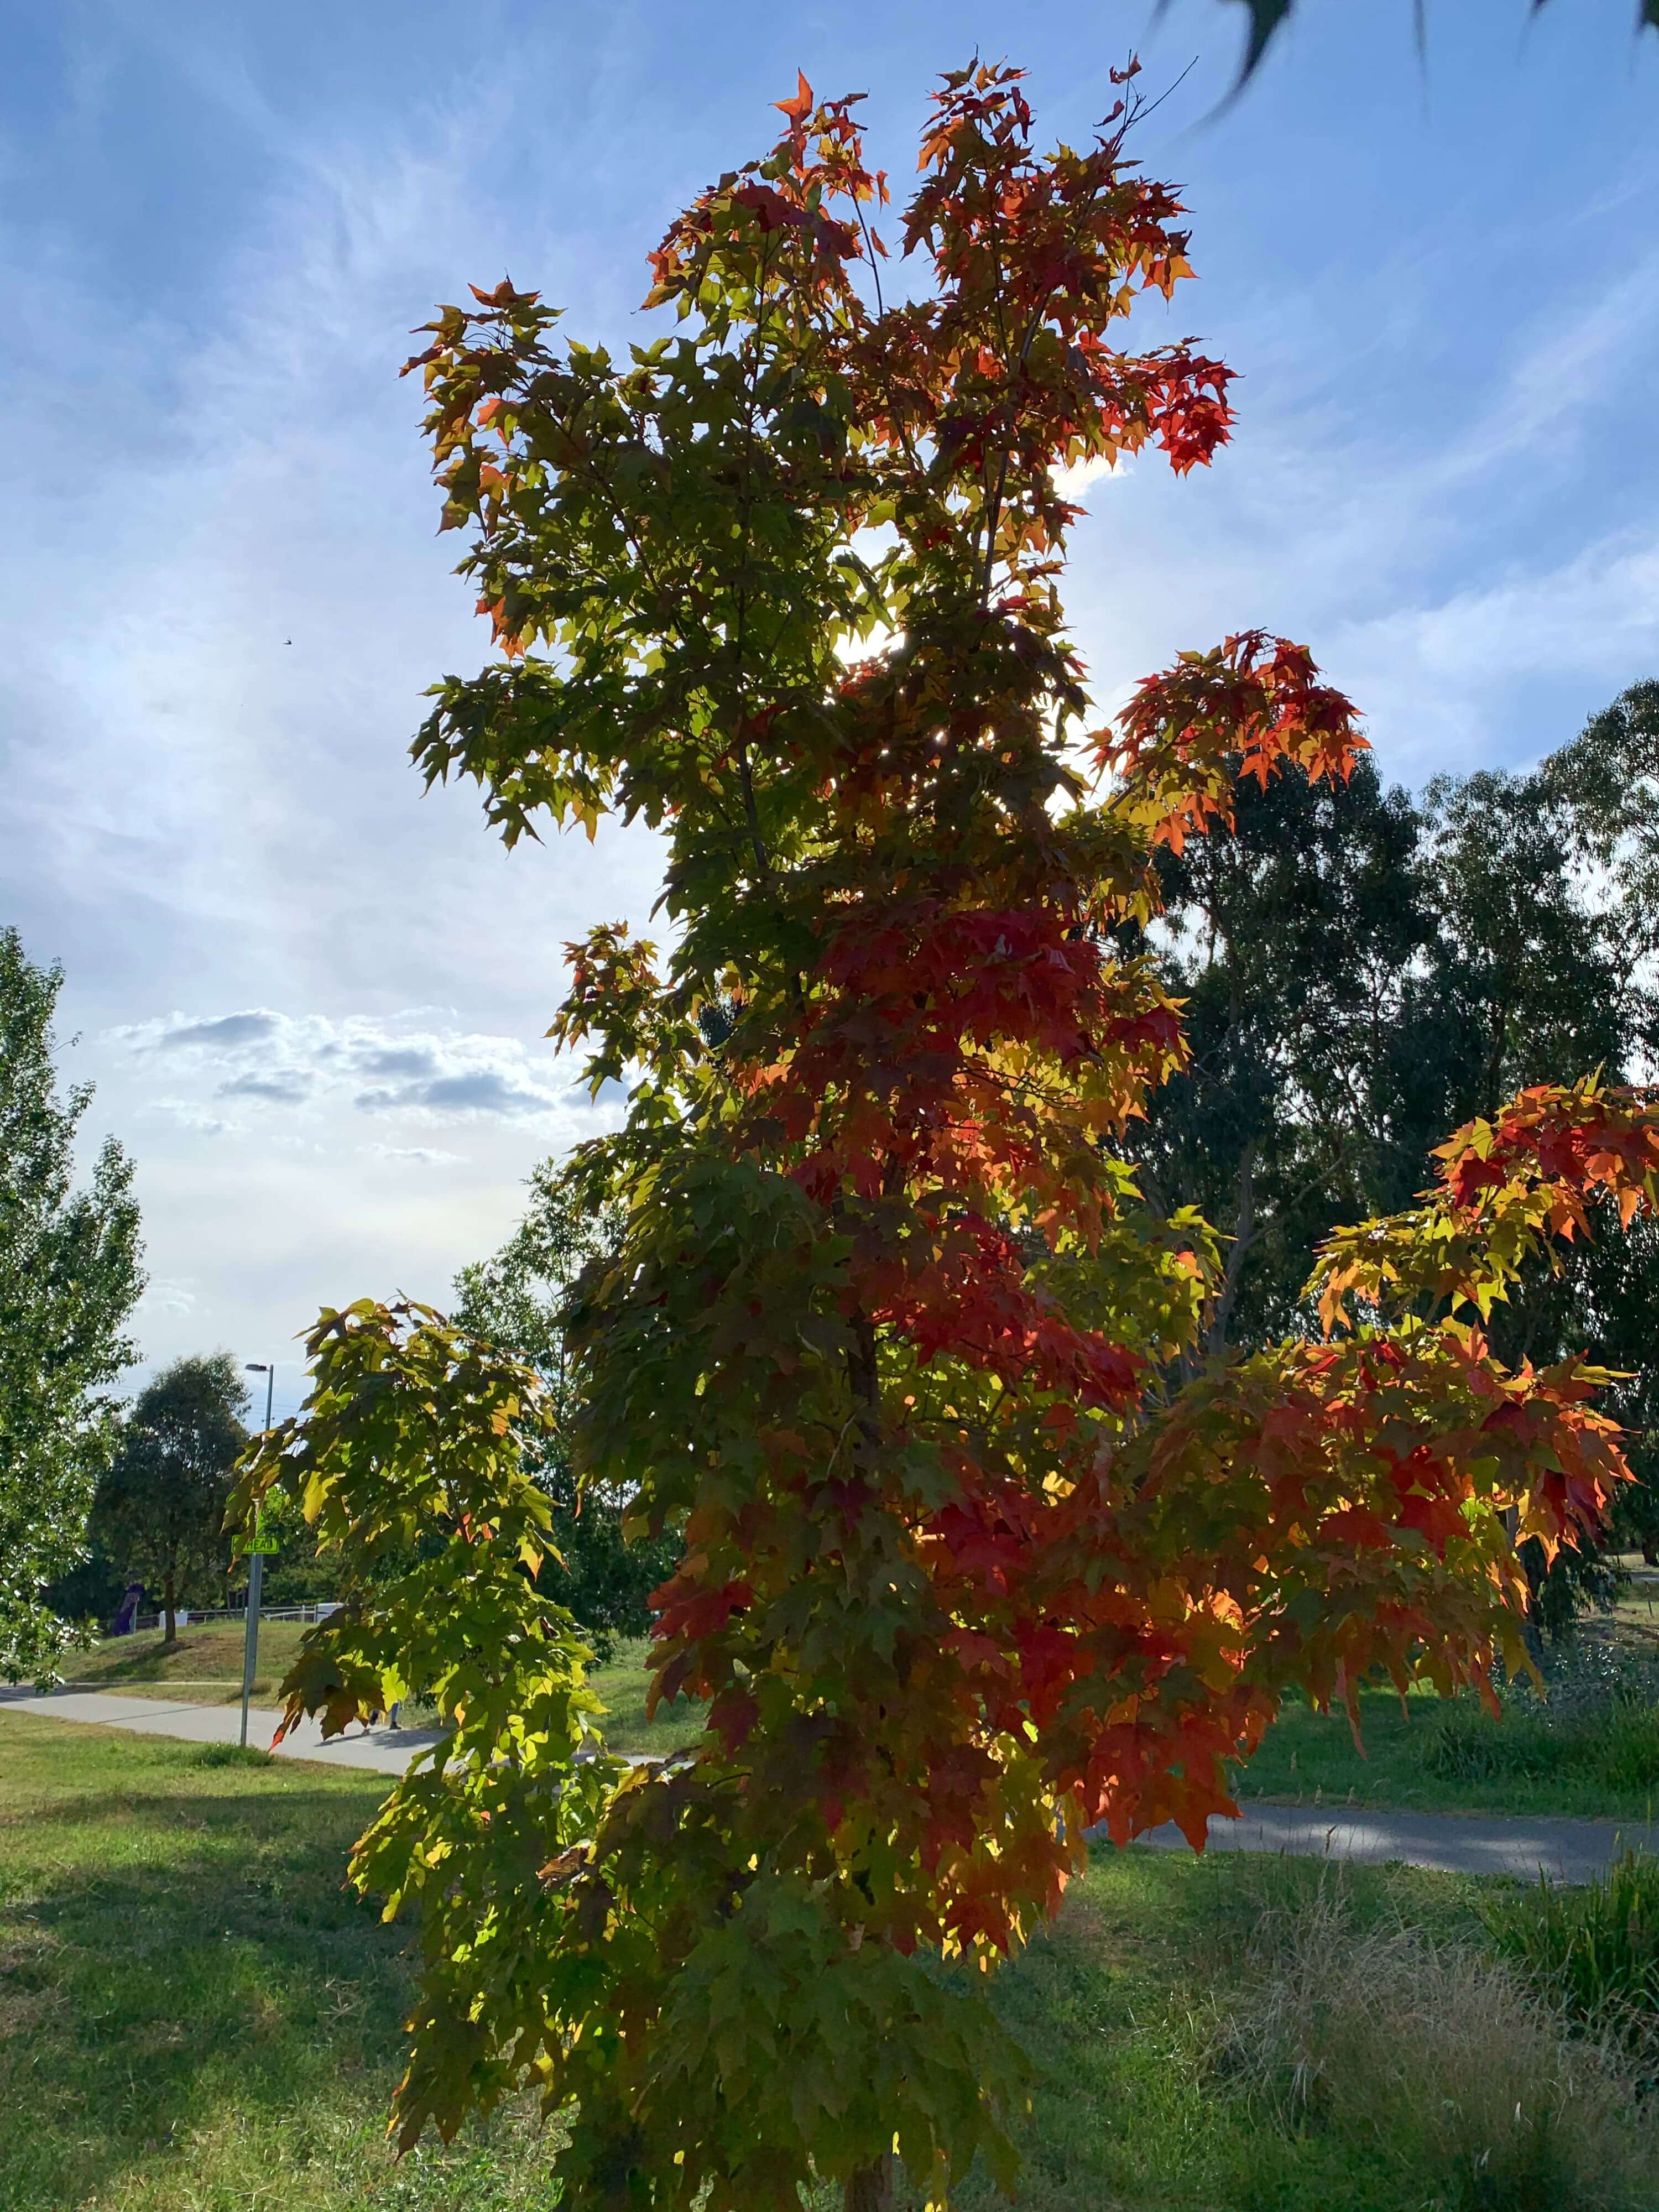 autumn sun shining through a small tree, the left side of the tree's leaves are green and the right gradually becoming reddish-brown, Canberra